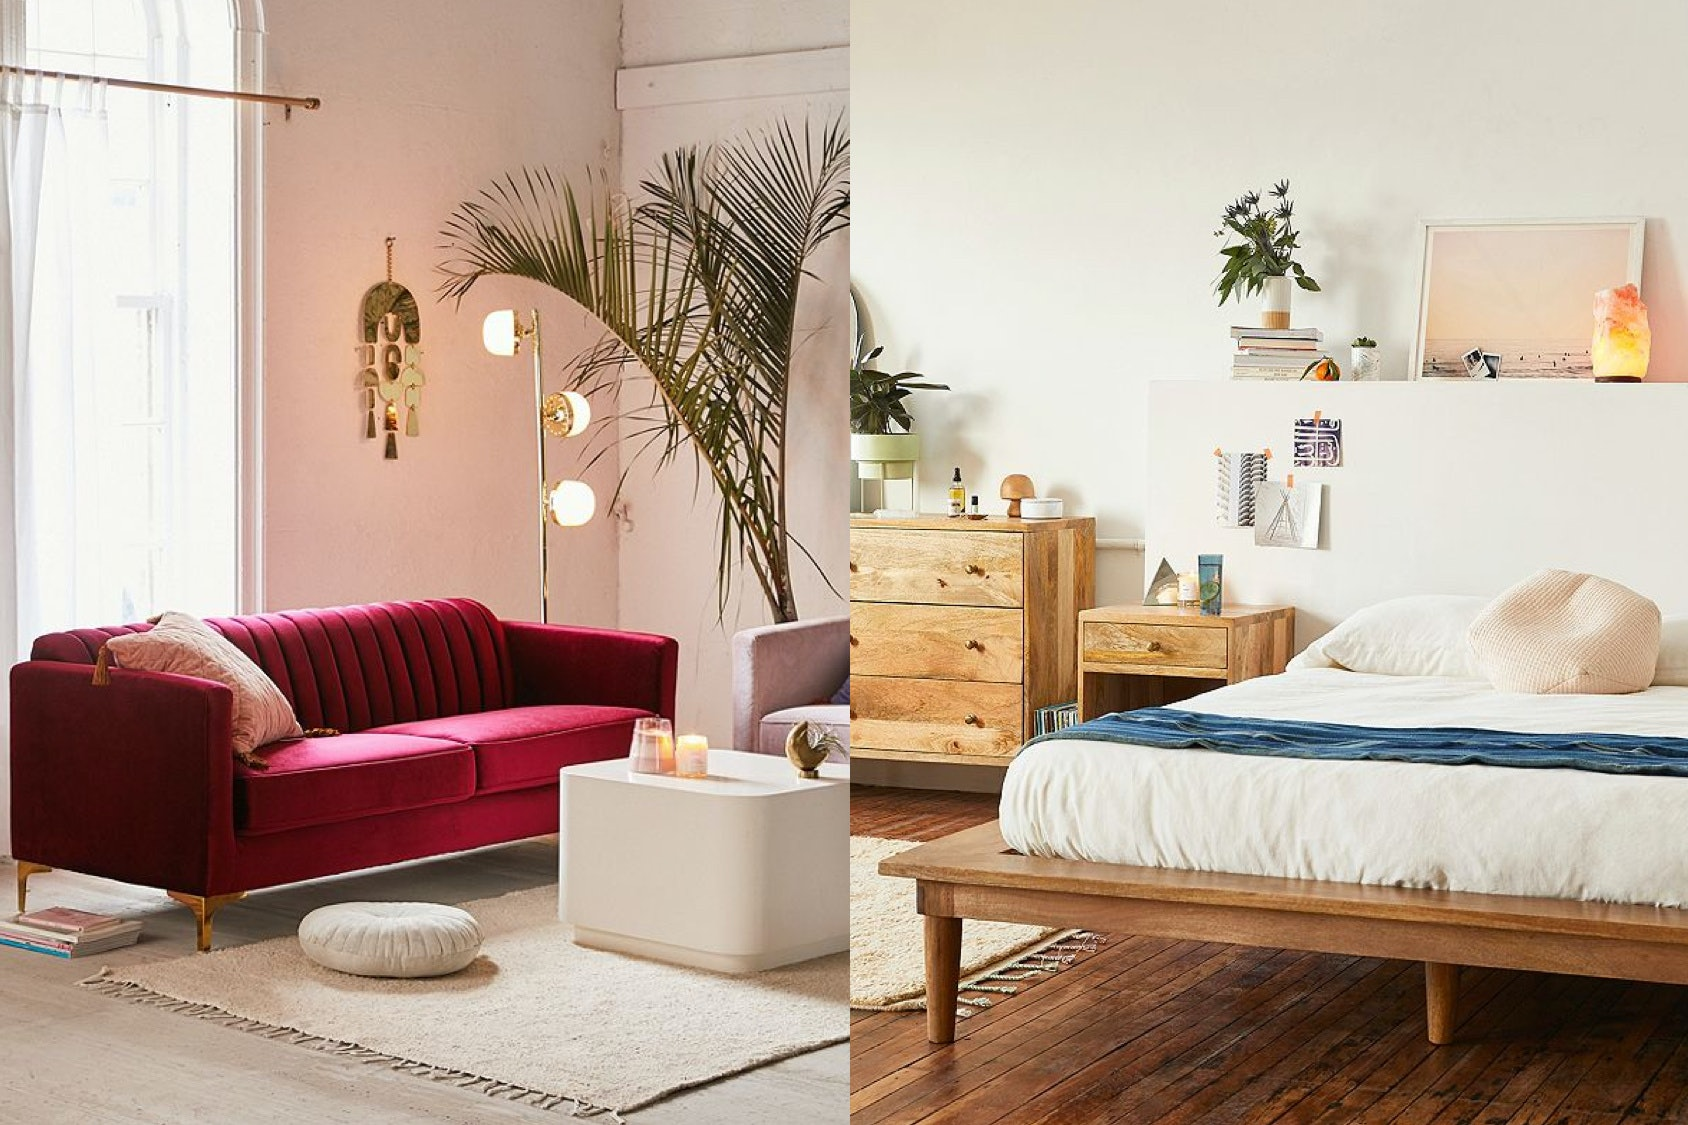 Urban Outfitters  Furniture Sale Includes Up To 40  Off Couches     Urban Outfitters  Furniture Sale Includes Up To 40  Off Couches  Tables     Other Home Decor Needs